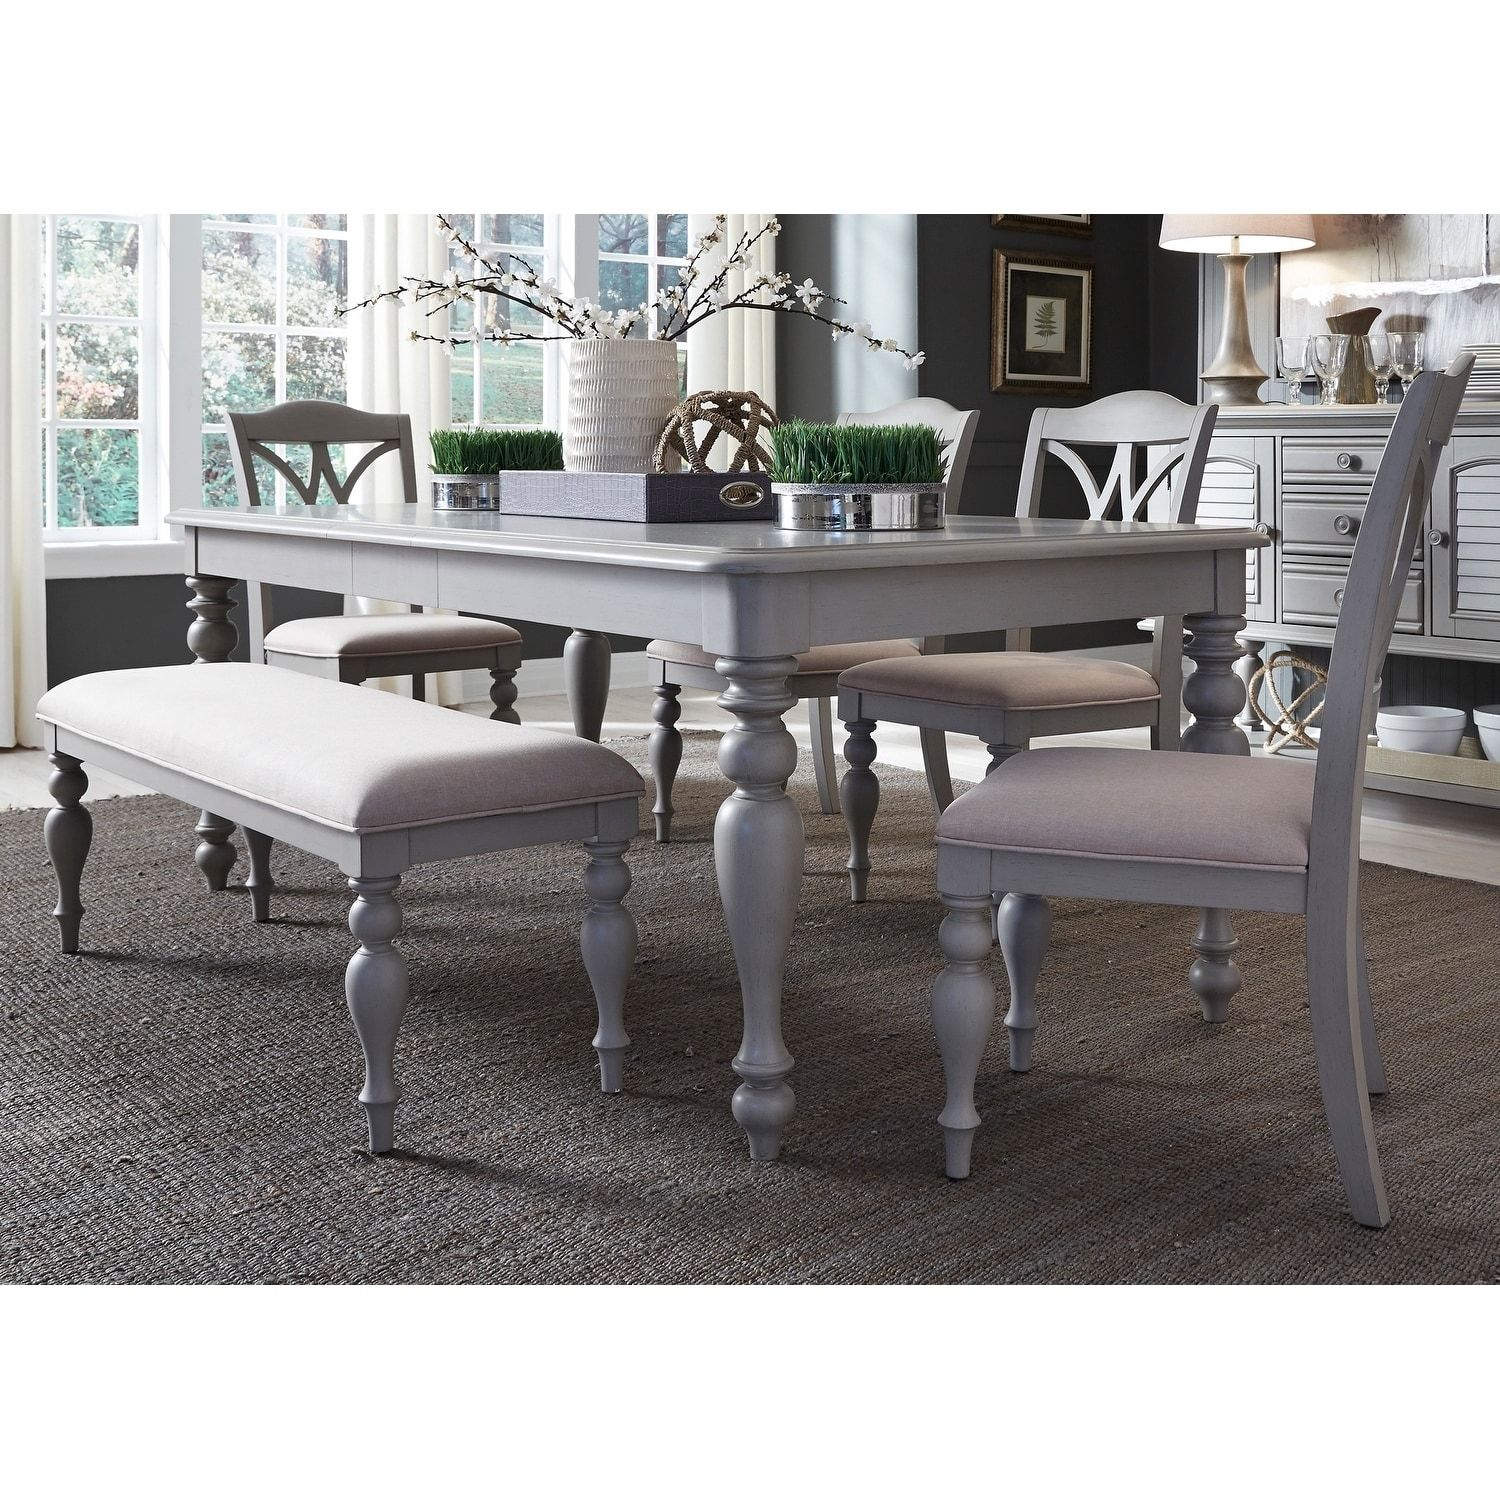 Enjoyable Summer House Dove Grey 6 Piece Rectangular Table Set With Caraccident5 Cool Chair Designs And Ideas Caraccident5Info